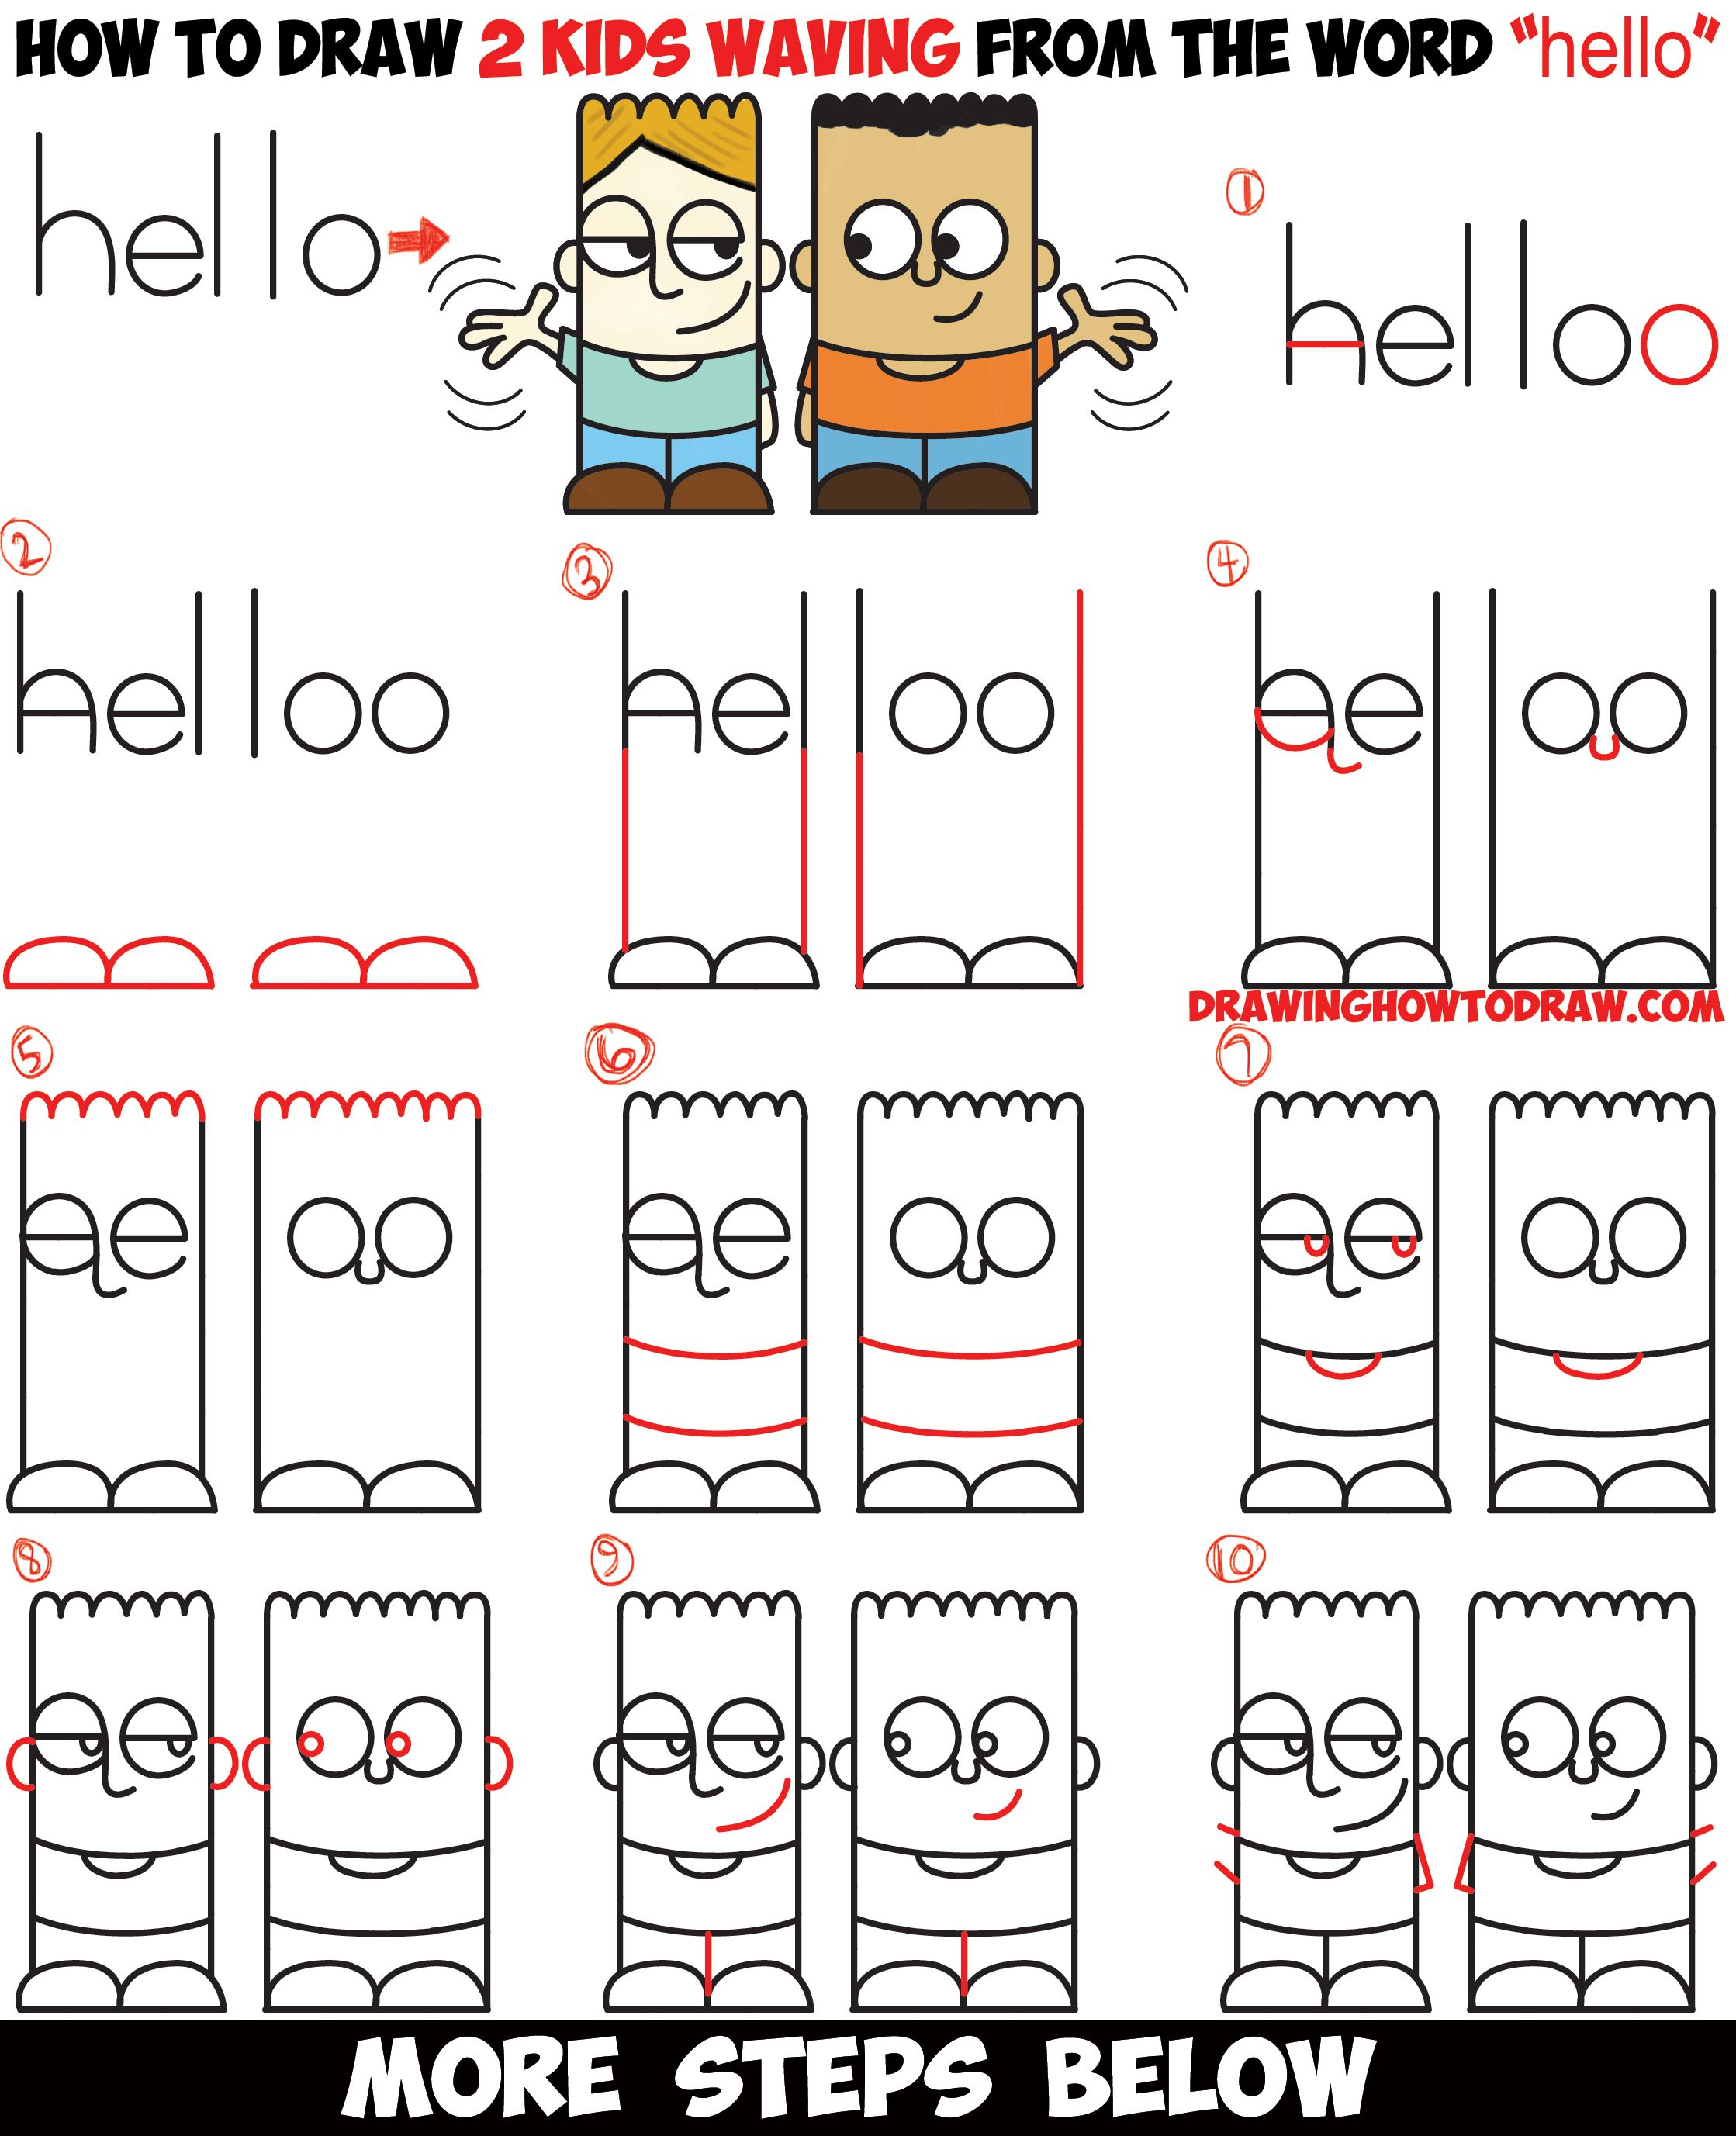 How To Draw 2 Cartoon Characters From The Word Hello Easy Step By Step Word Toon Drawing Tutorial For Kids How To Draw Step By Step Drawing Tutorials Drawing Tutorials